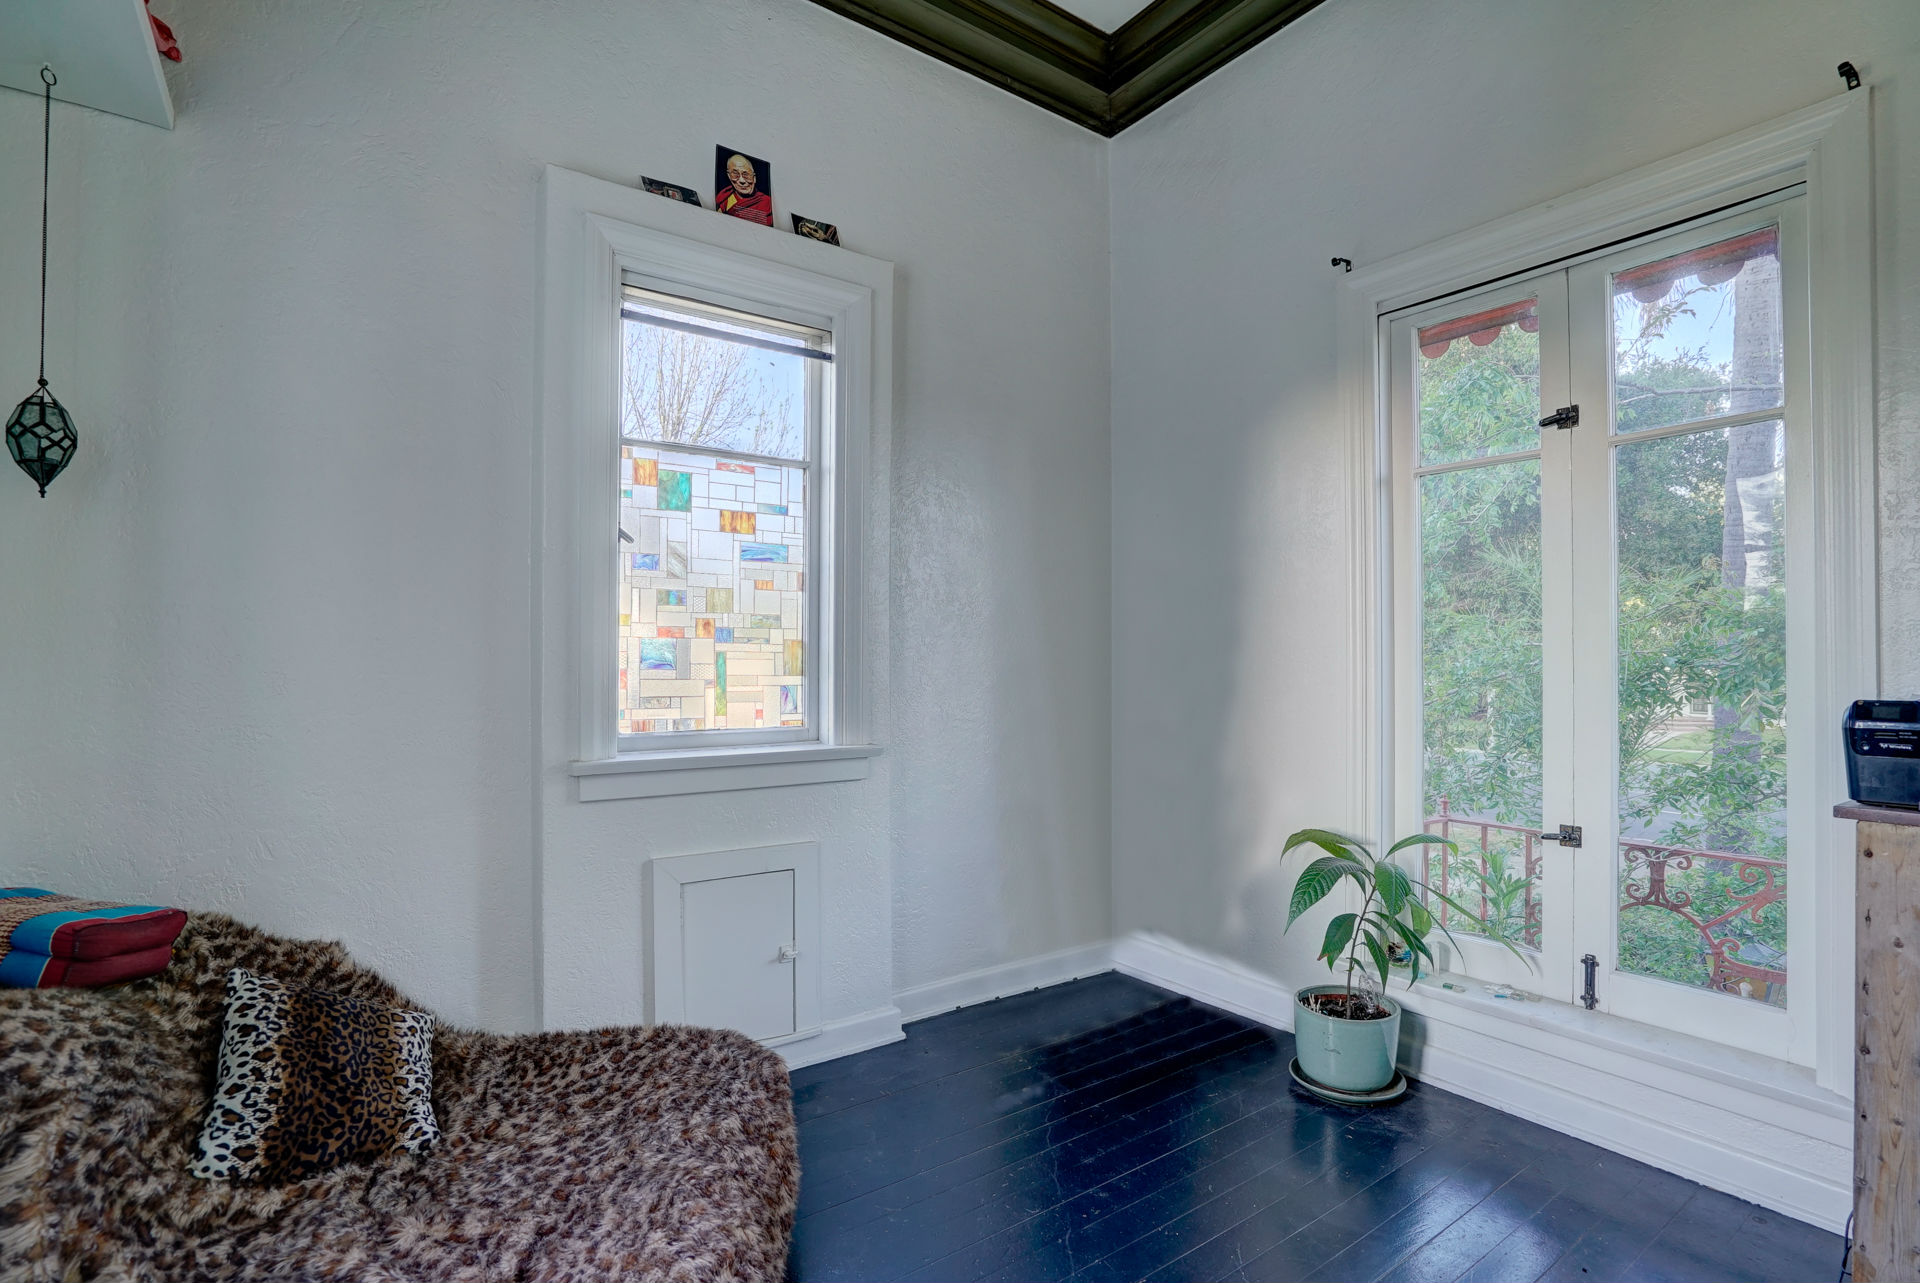 The bell tower room with balcony and wood floors. An ideal room for meditating, reading, or reflecting on who may have stayed in this house during the past 98 years.